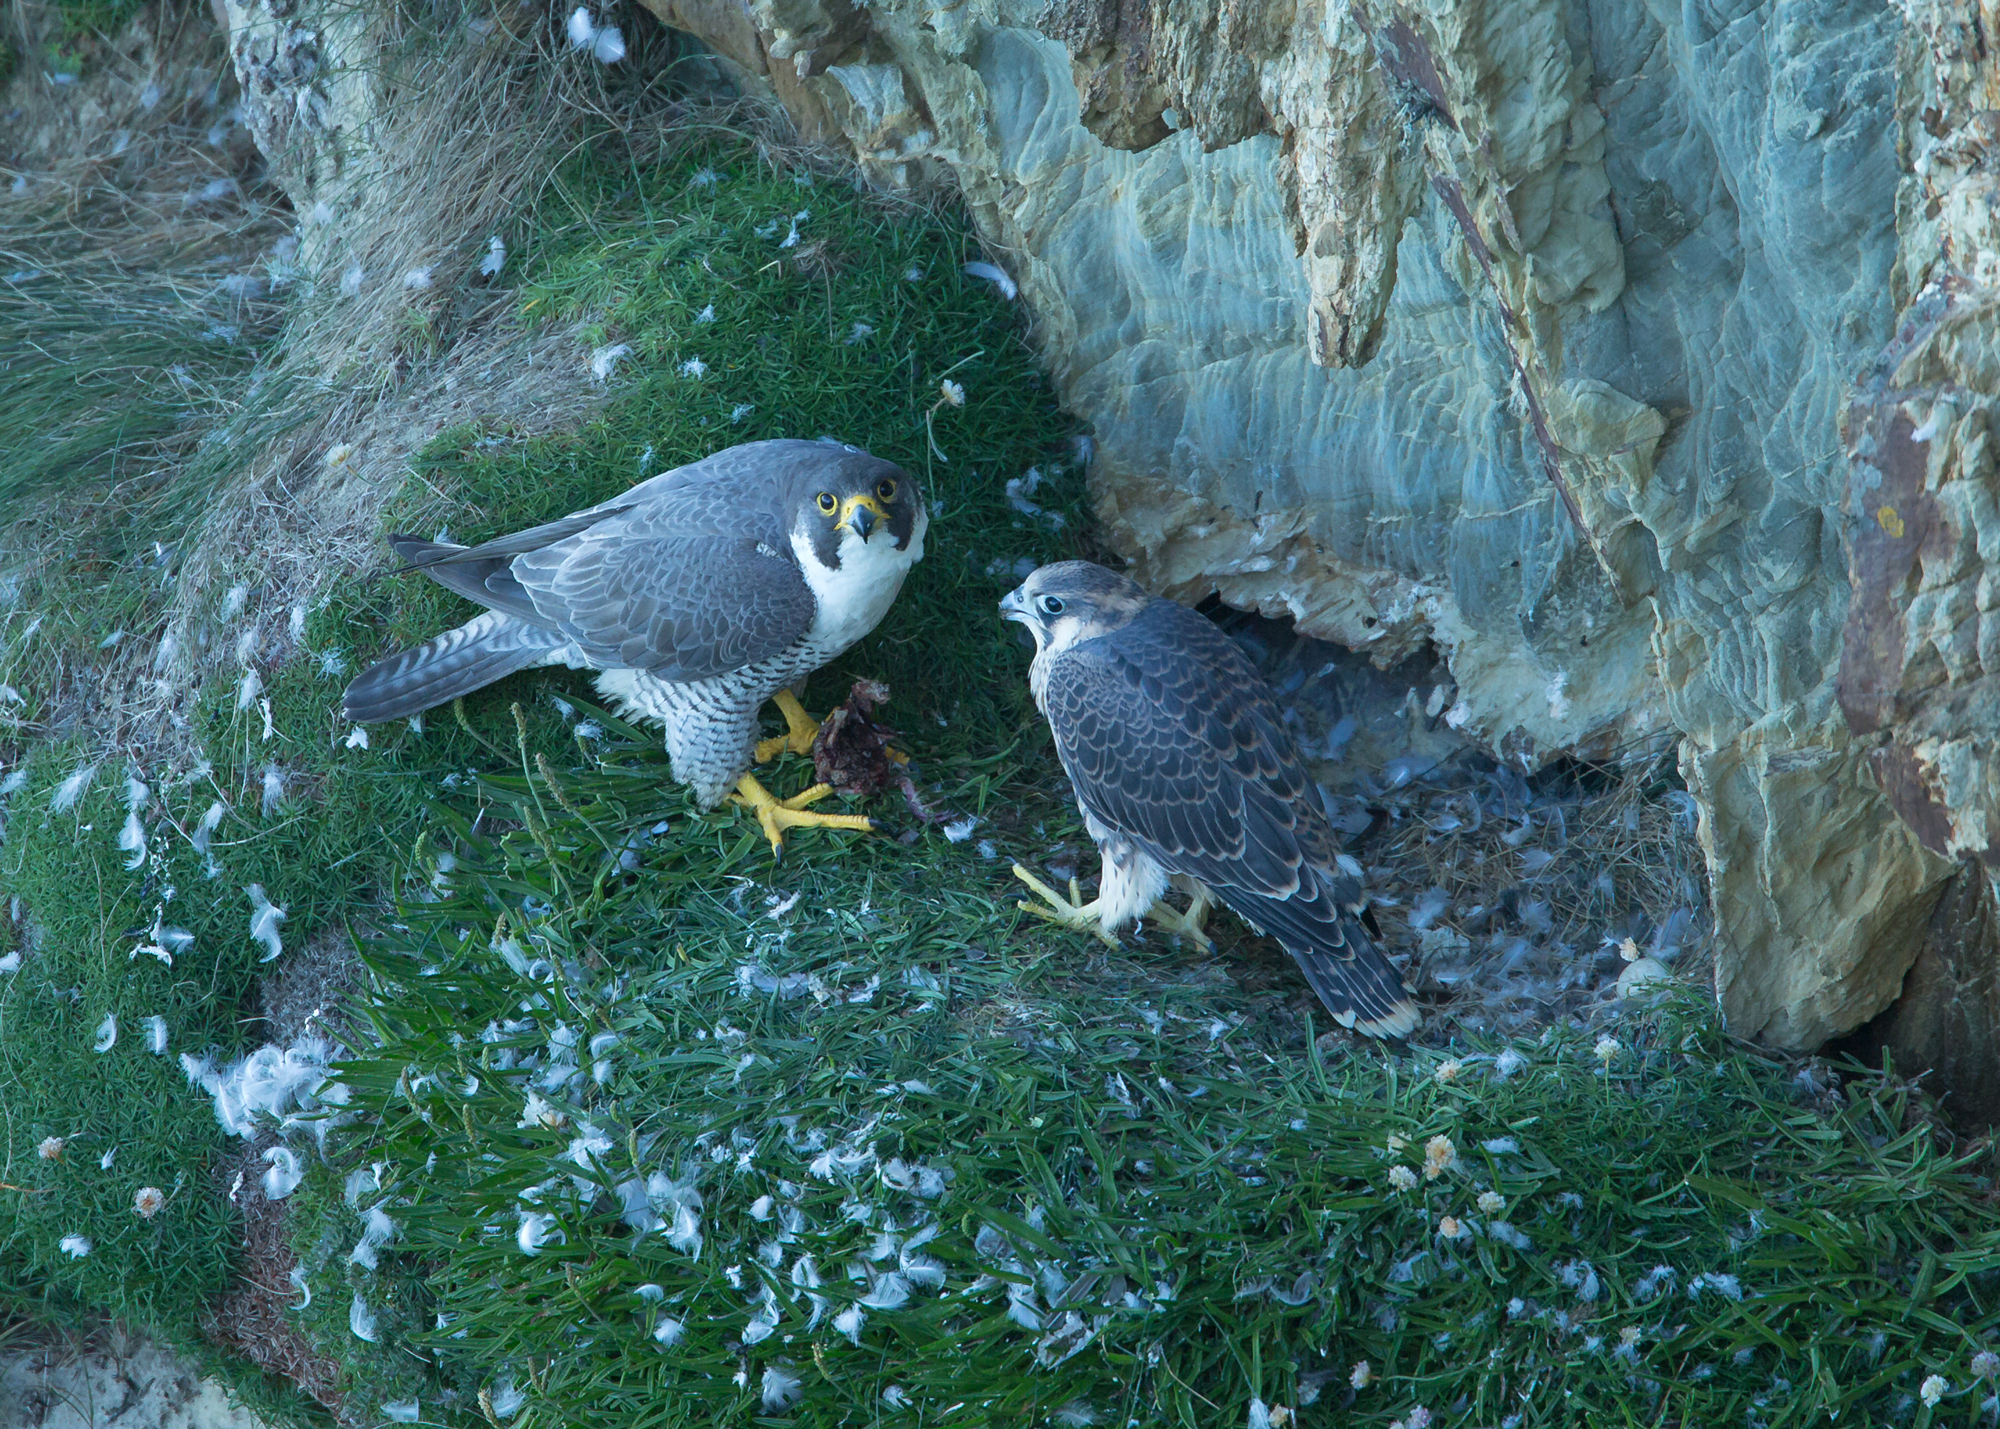 Female Peregrine feeding her youngster the remains of a stashed food item